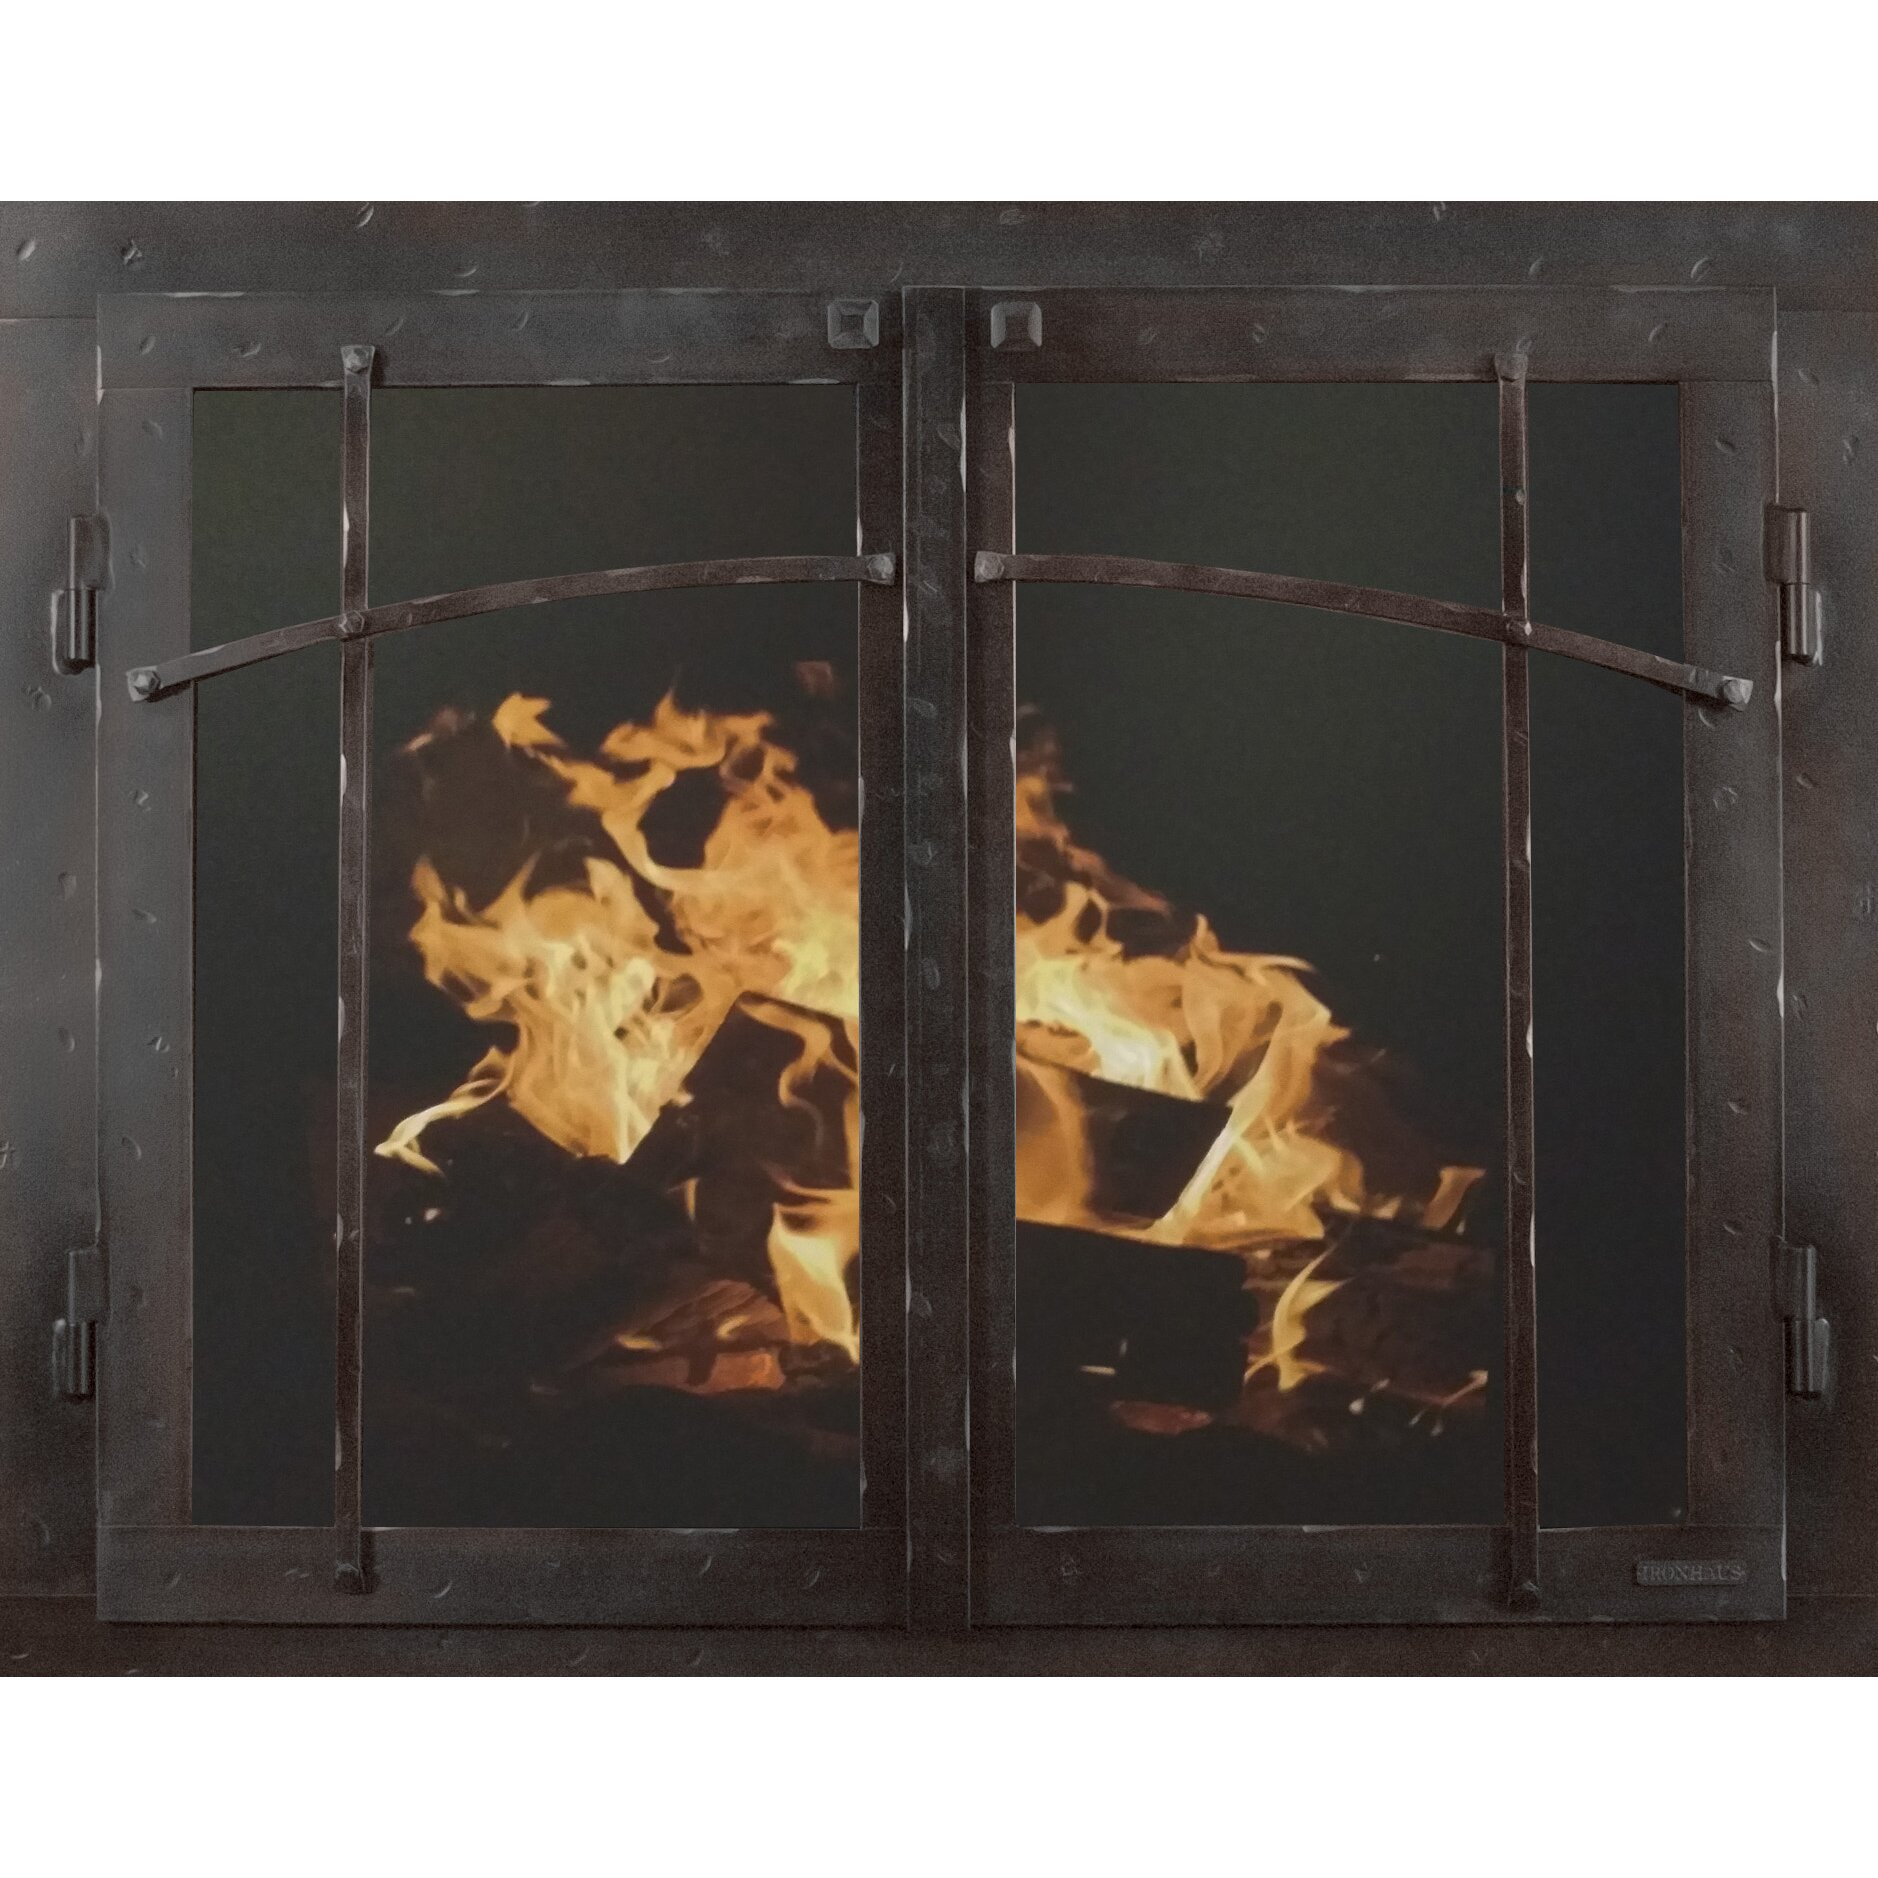 Replacement Fireplace Glass - Fireplace door glass replacement